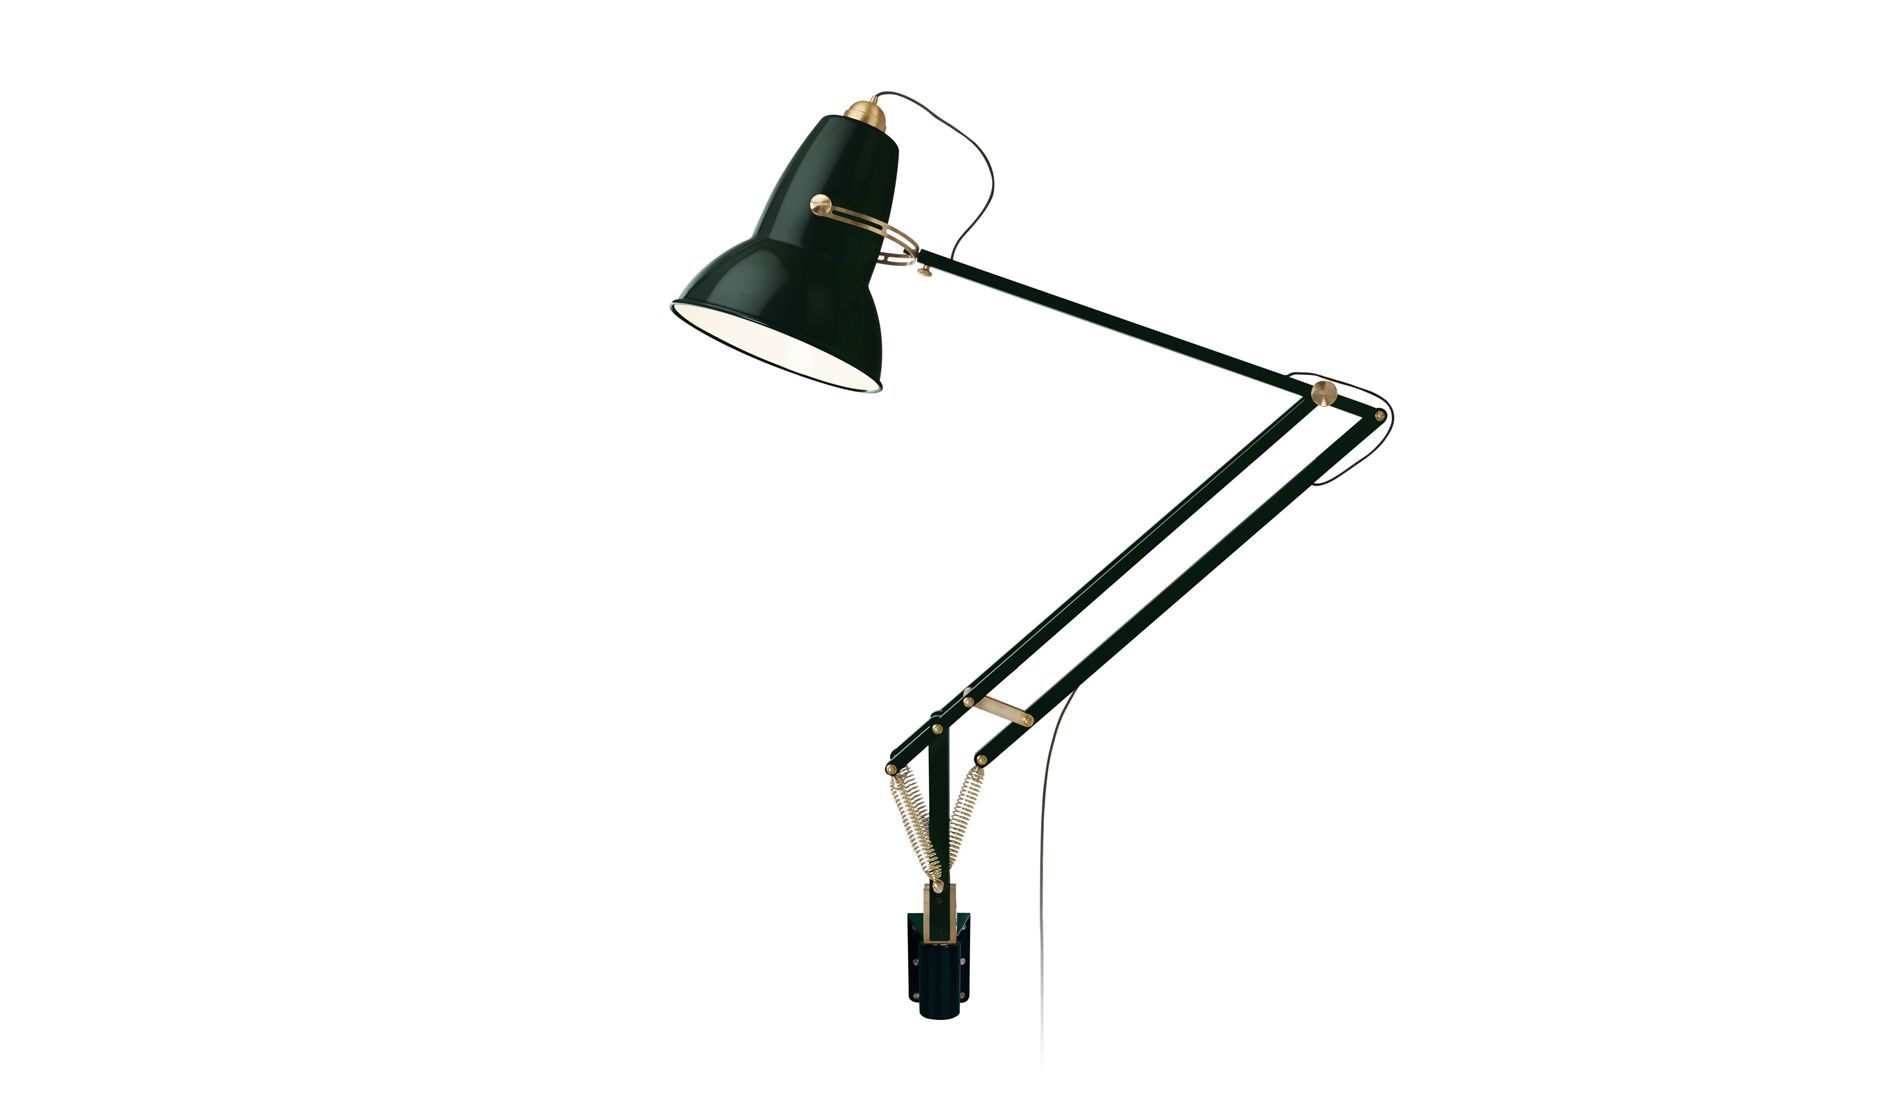 Nástěnná lampa Original 1227 Giant Messing Green